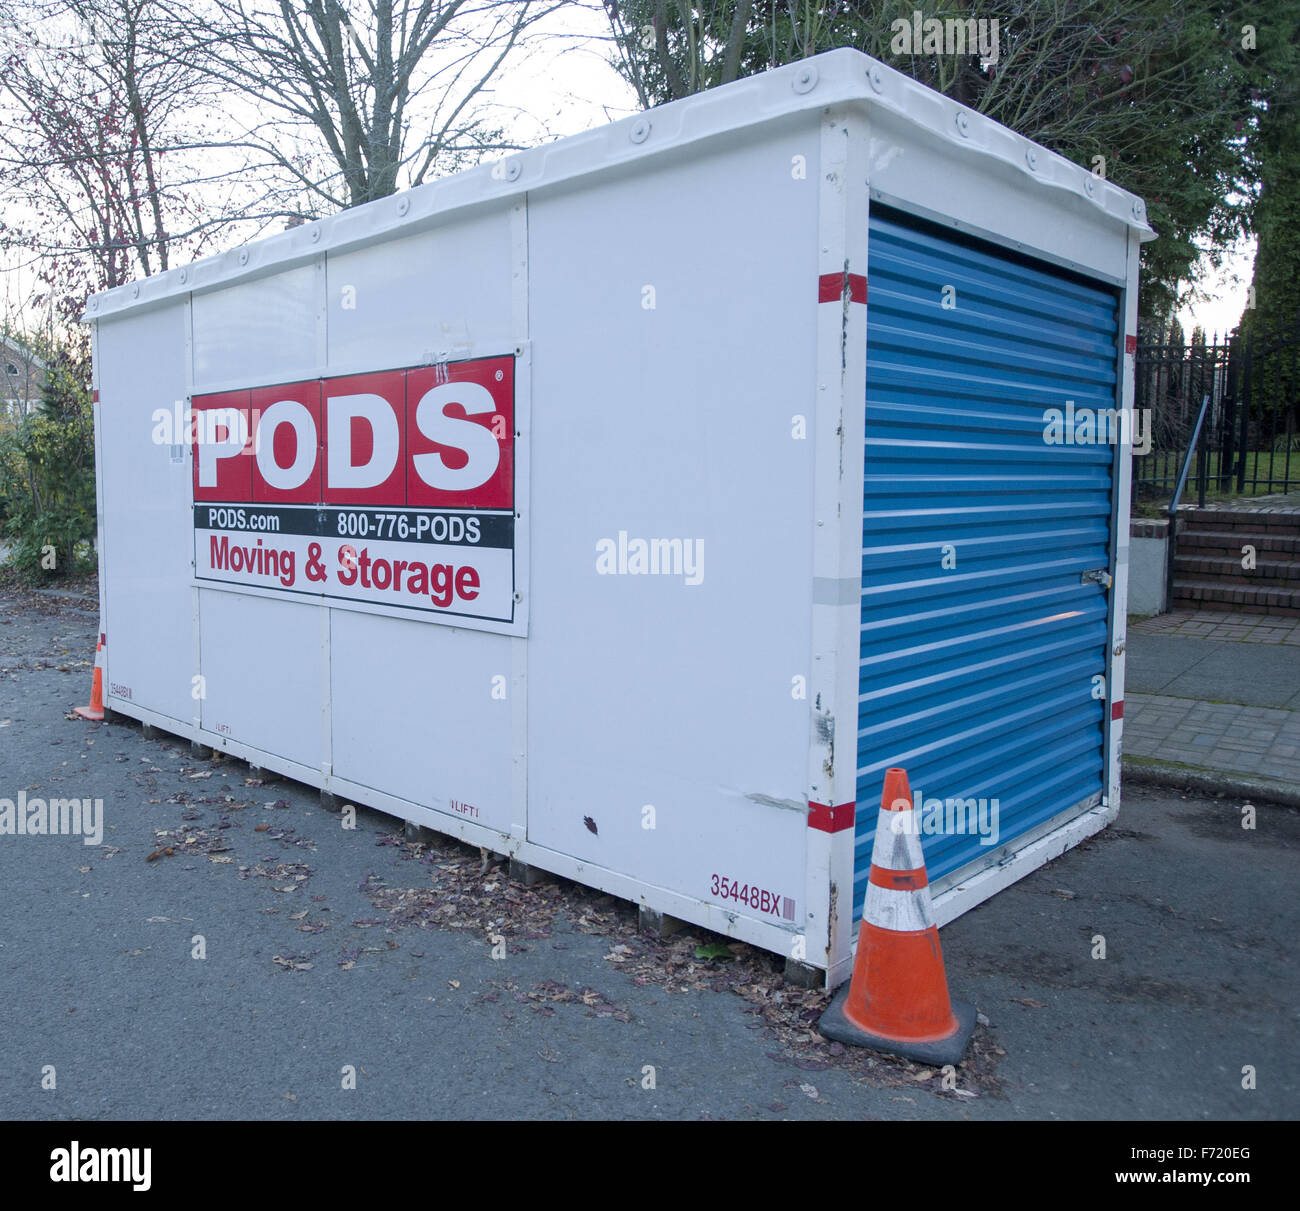 Pods Moving Storage Container Stock Photos Pods Moving Storage